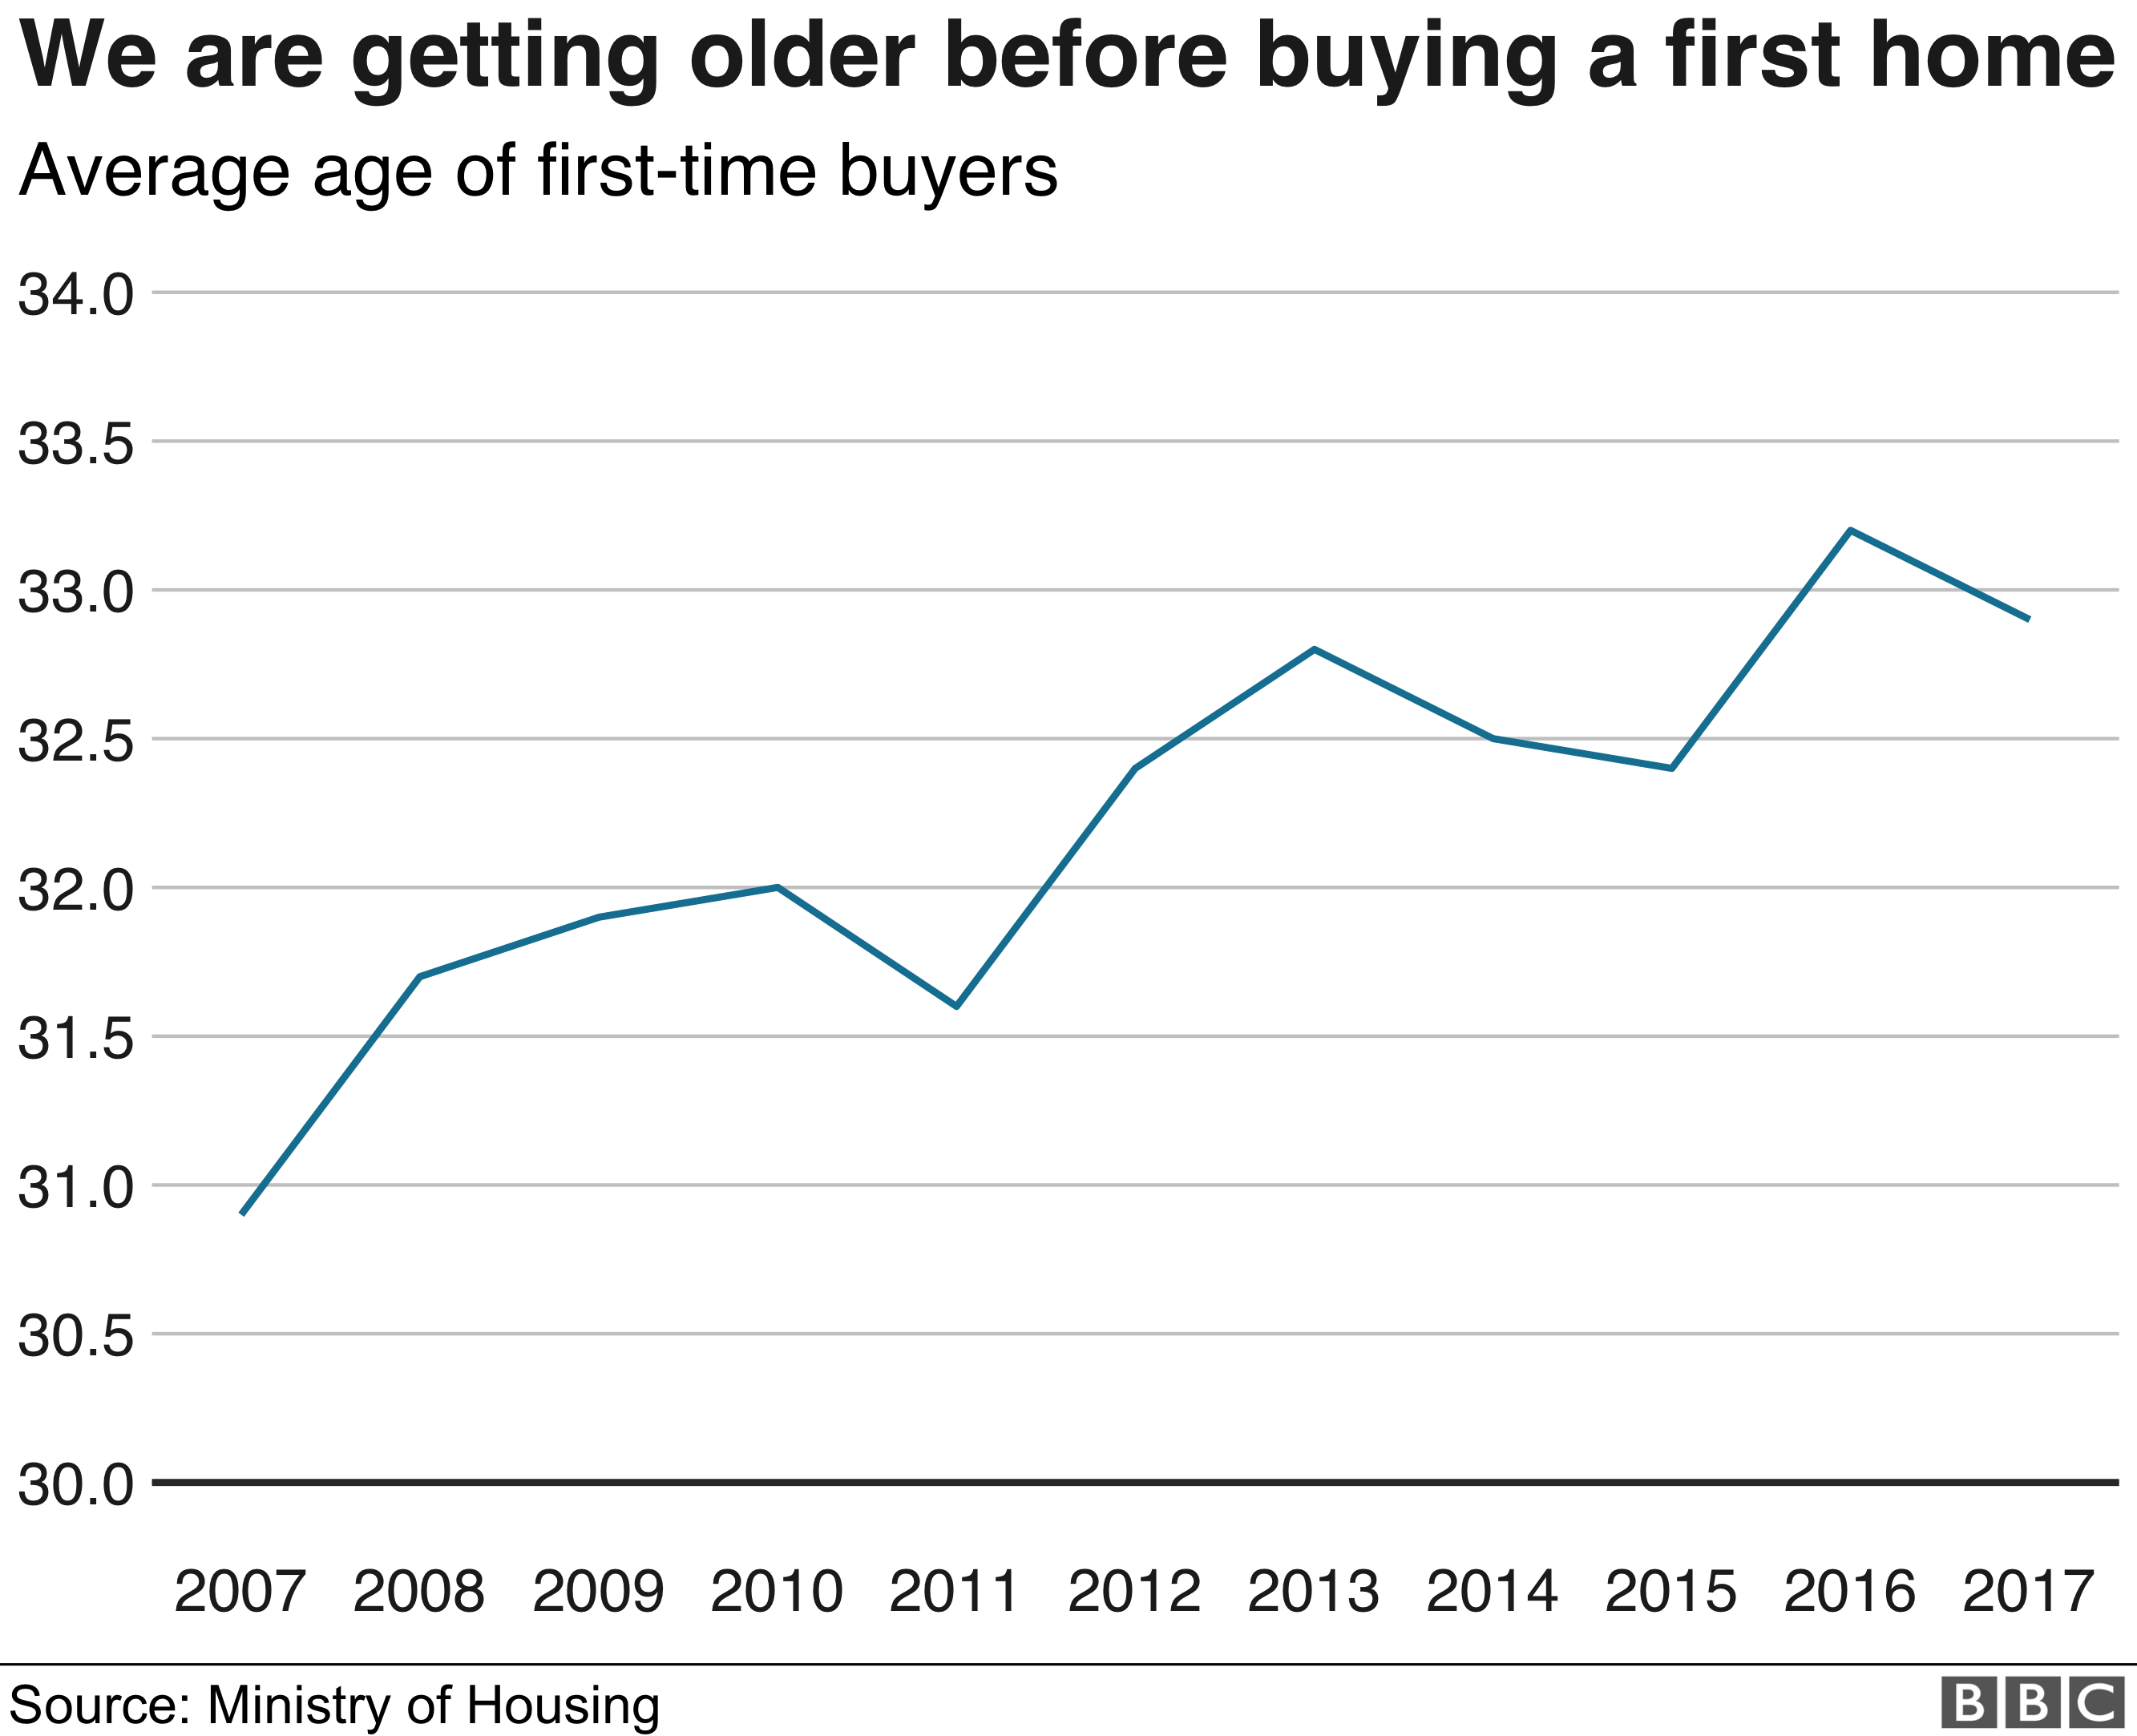 Average age of first-time buyer